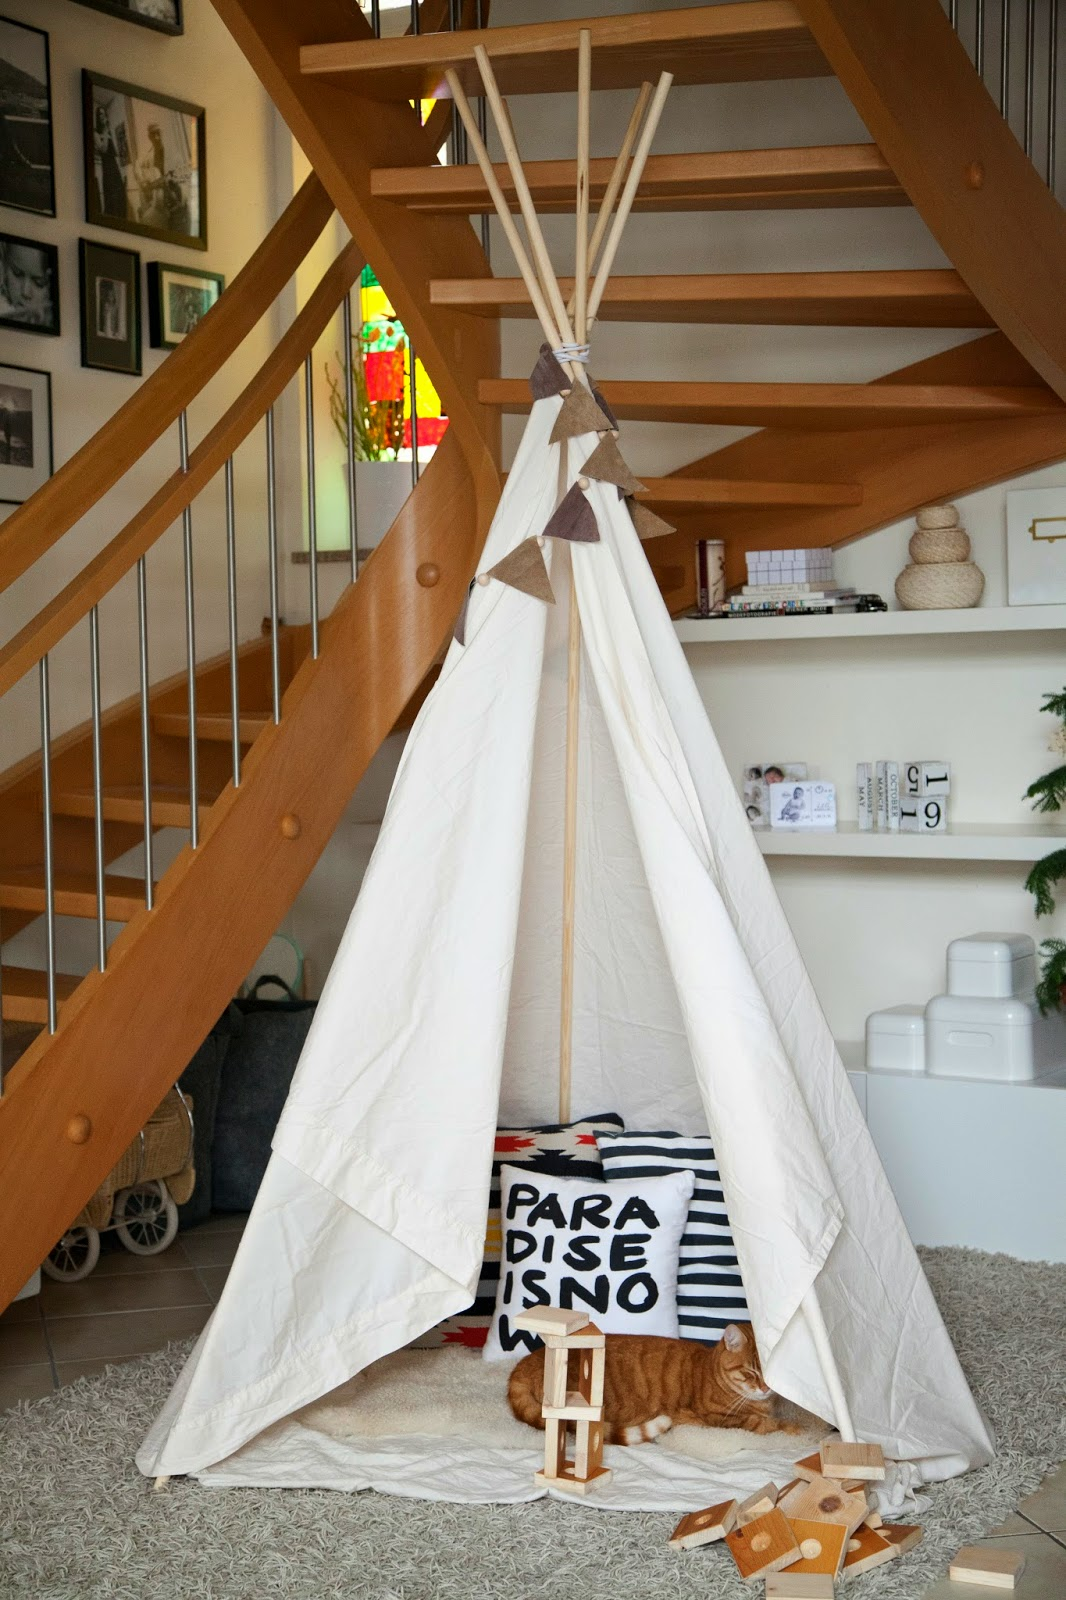 8 diy ideen tipi spielzelt selber bauen style pray love. Black Bedroom Furniture Sets. Home Design Ideas